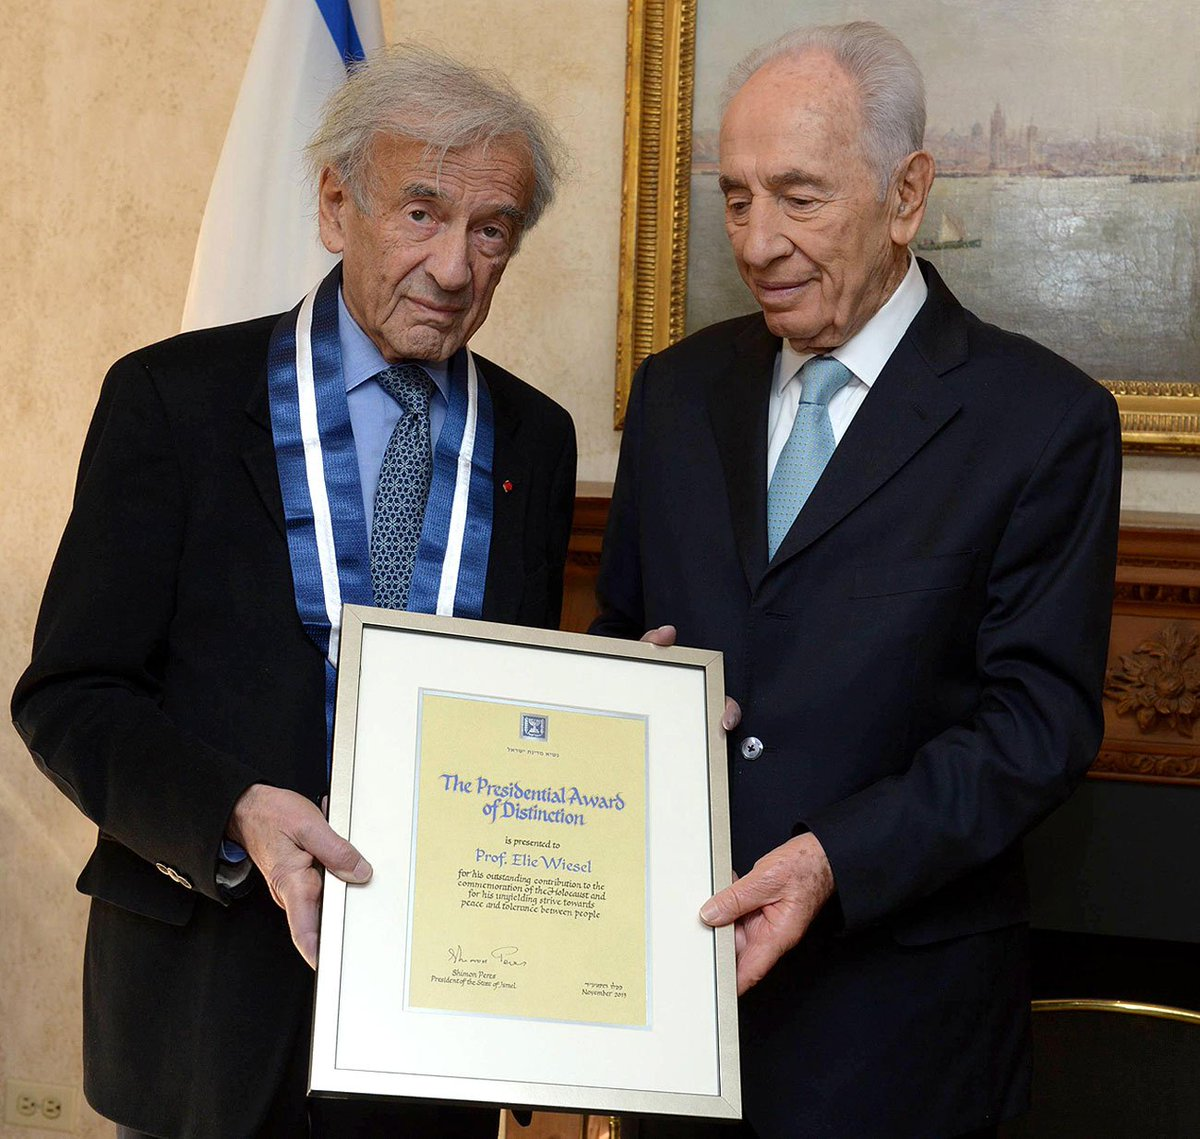 """Even though I don't live in Israel, Israel lives within me"" - Elie Wiesel. May his memory be a blessing. https://t.co/2aUMatZQhg"